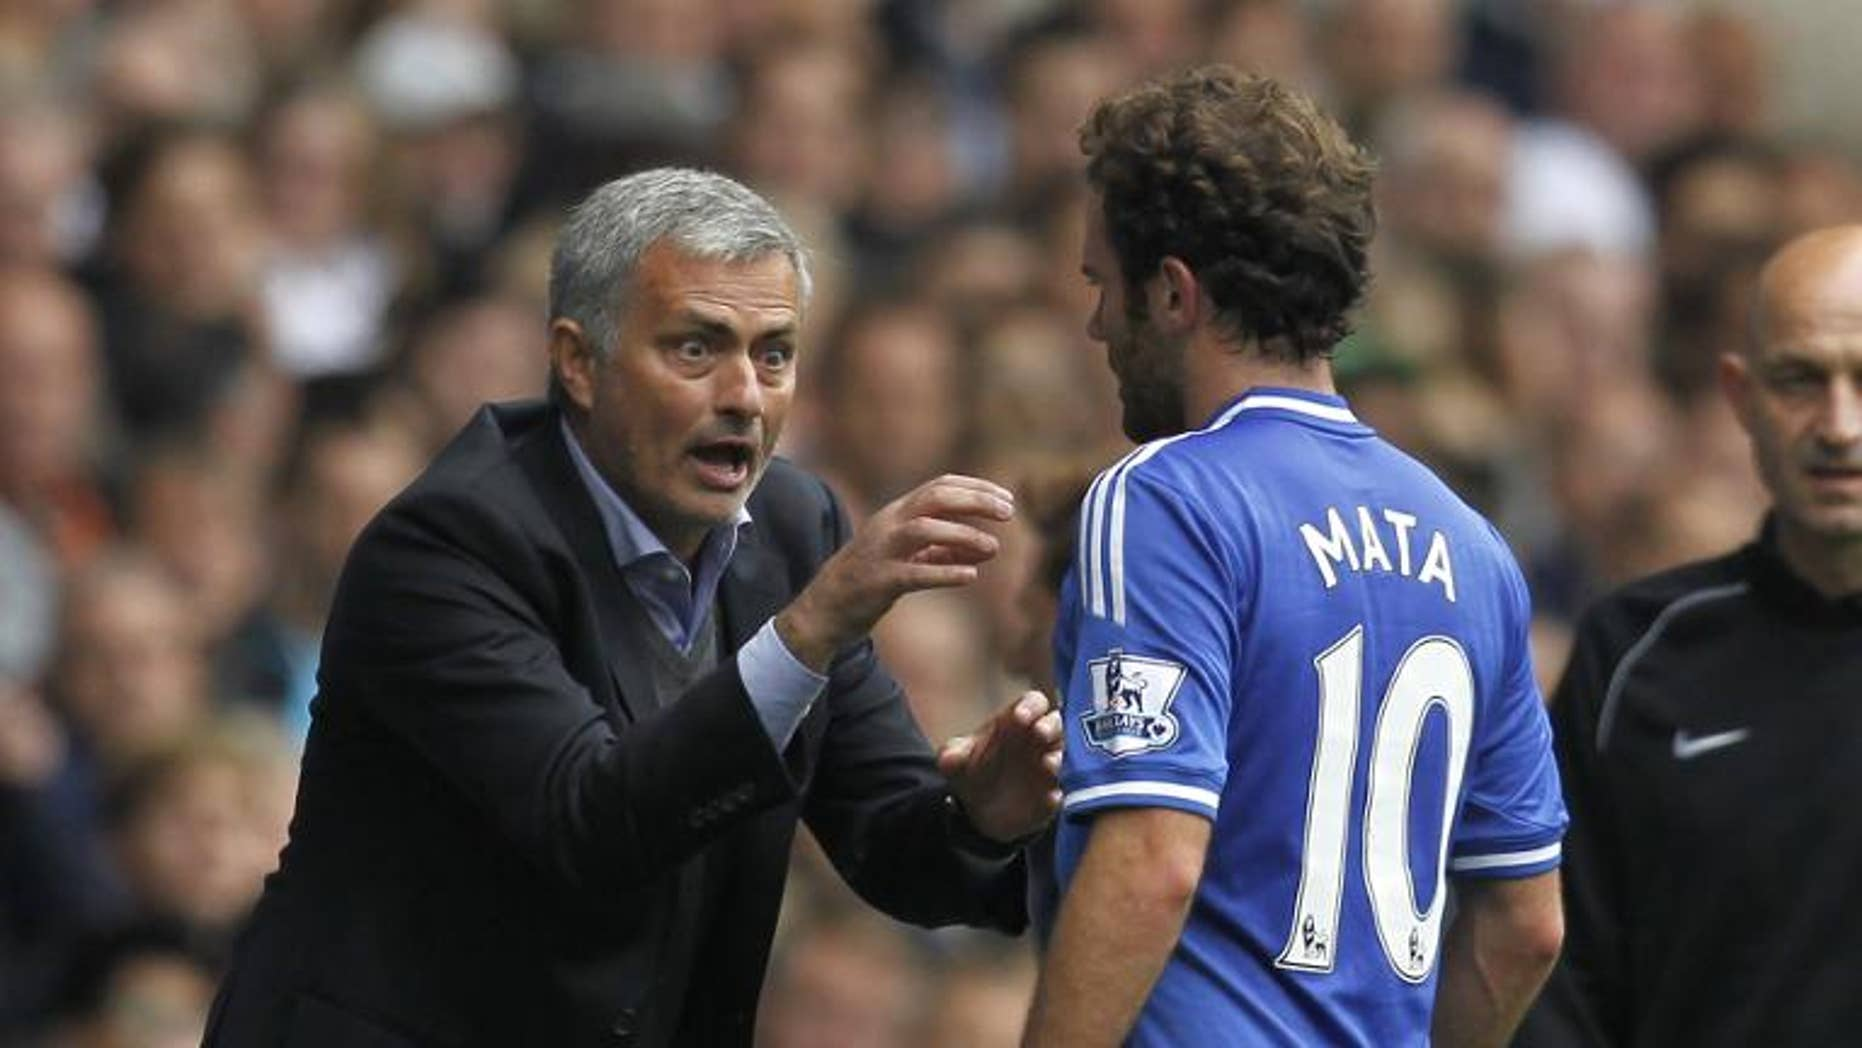 Chelsea's Portuguese manager Jose Mourinho (left) gestures to Juan Mata during a match with Tottenham Hotspur at White Hart Lane on September 28, 2013